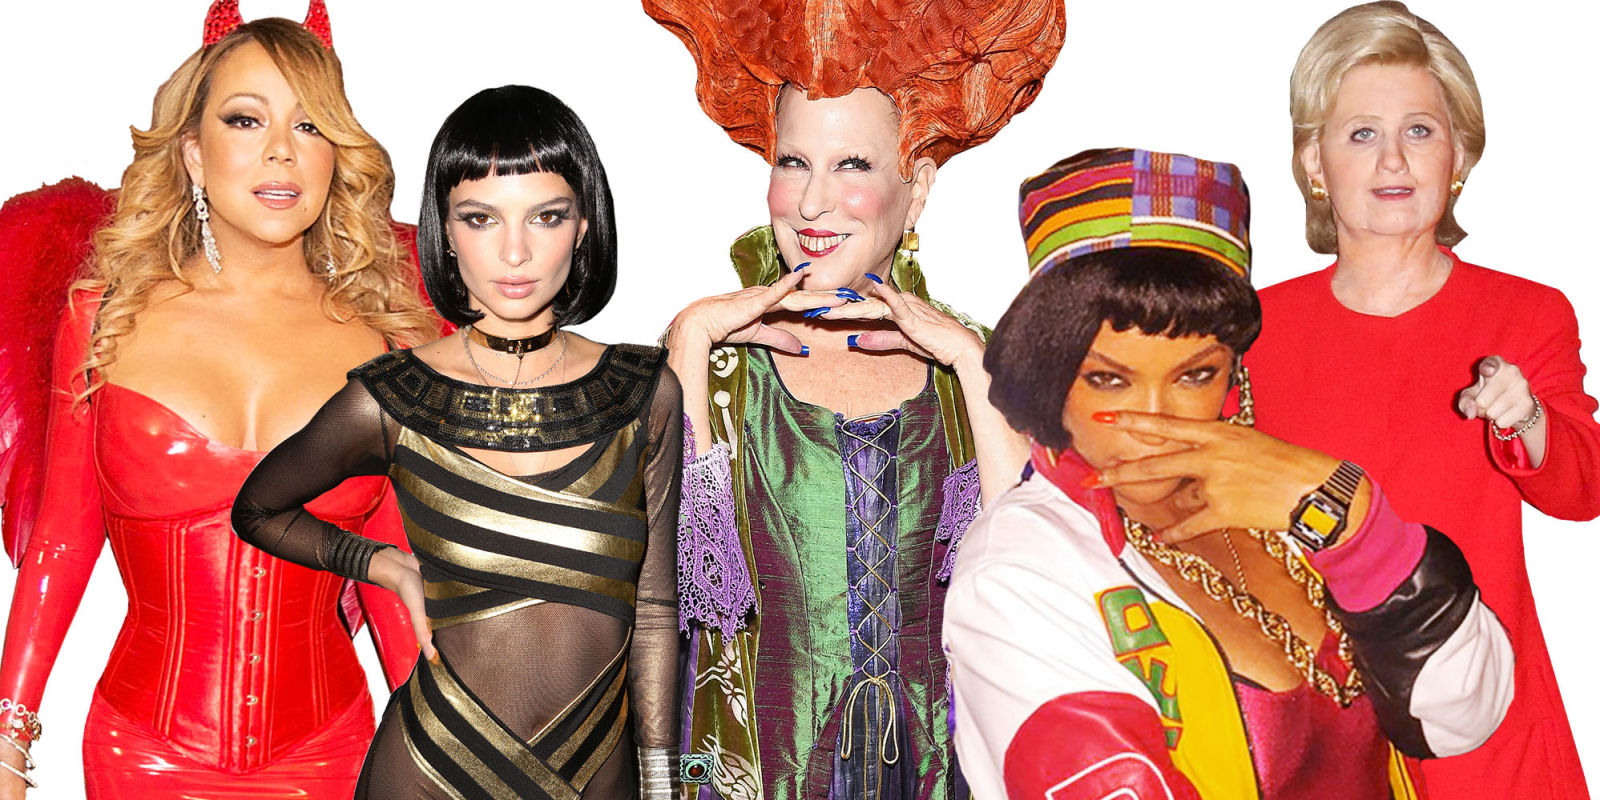 The Best Celebrity Halloween Costumes Ever - GQ